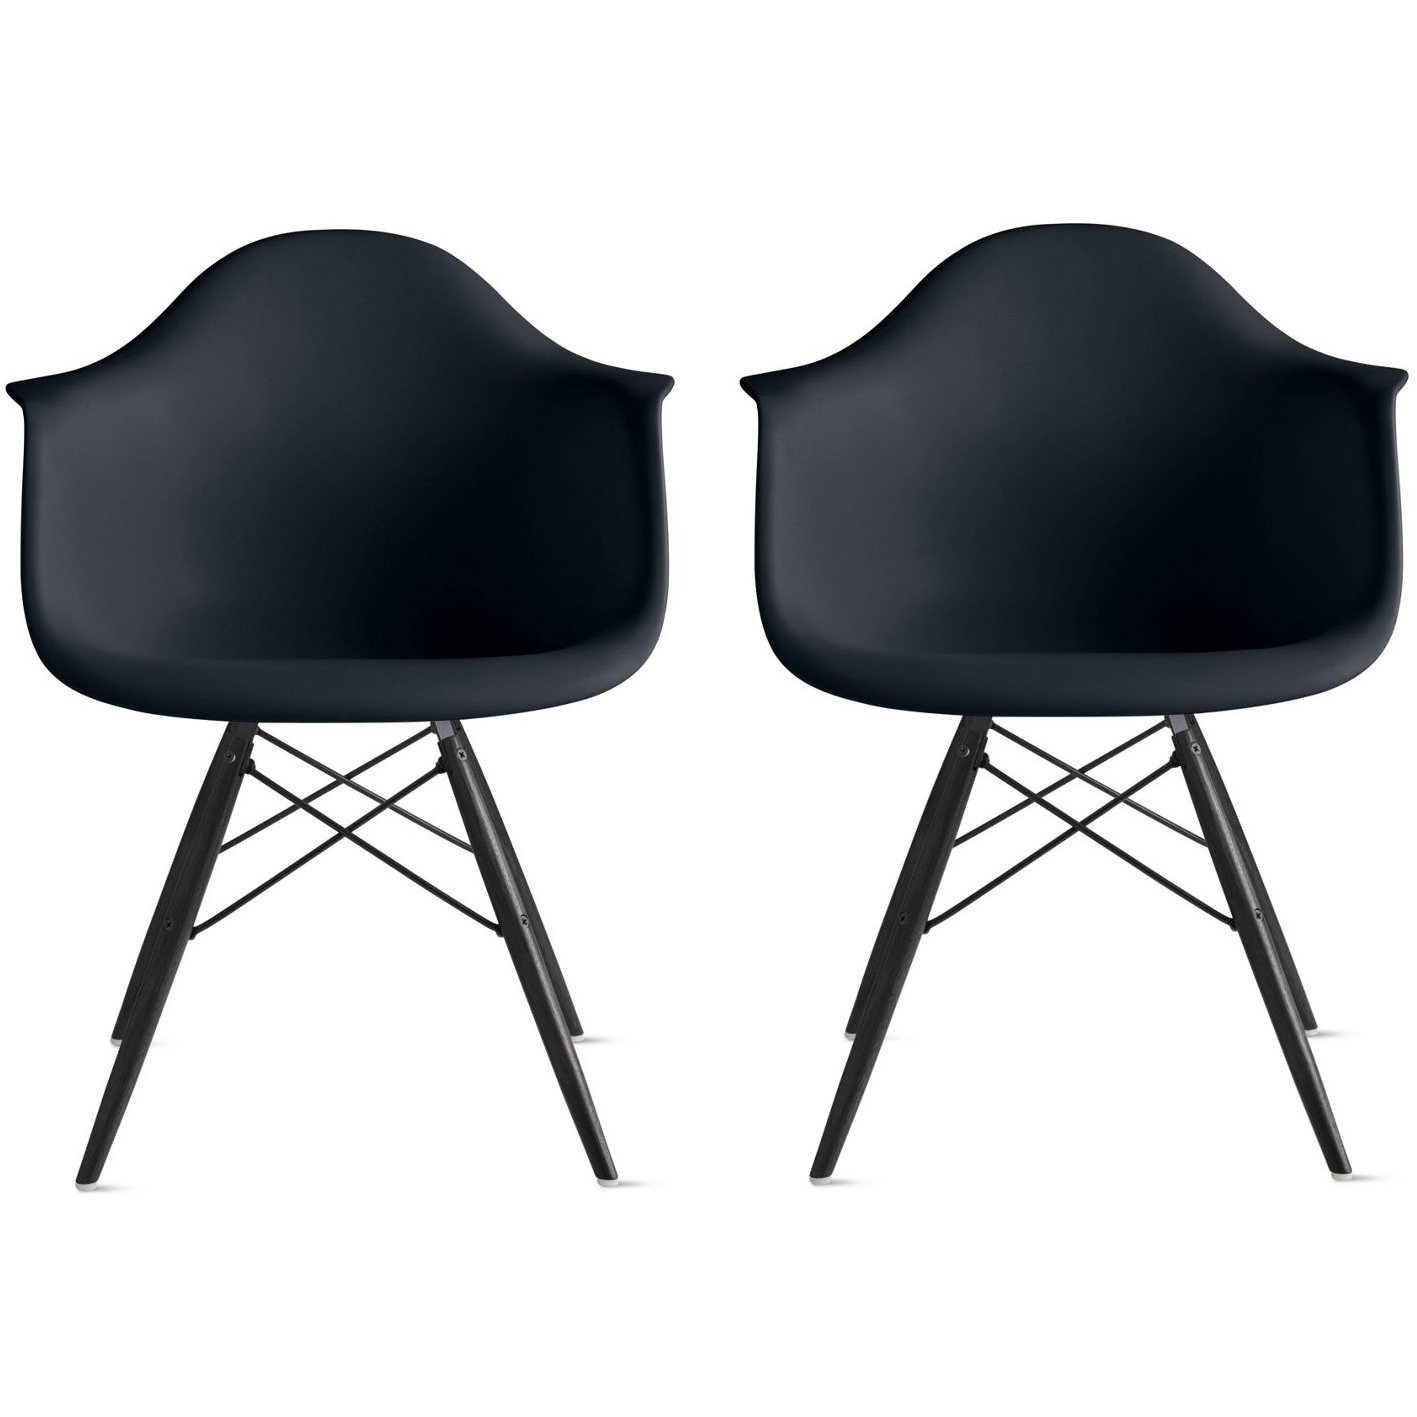 black plastic chair with wooden legs circle shaped 2xhome set of 2 two armchair wood eiffel